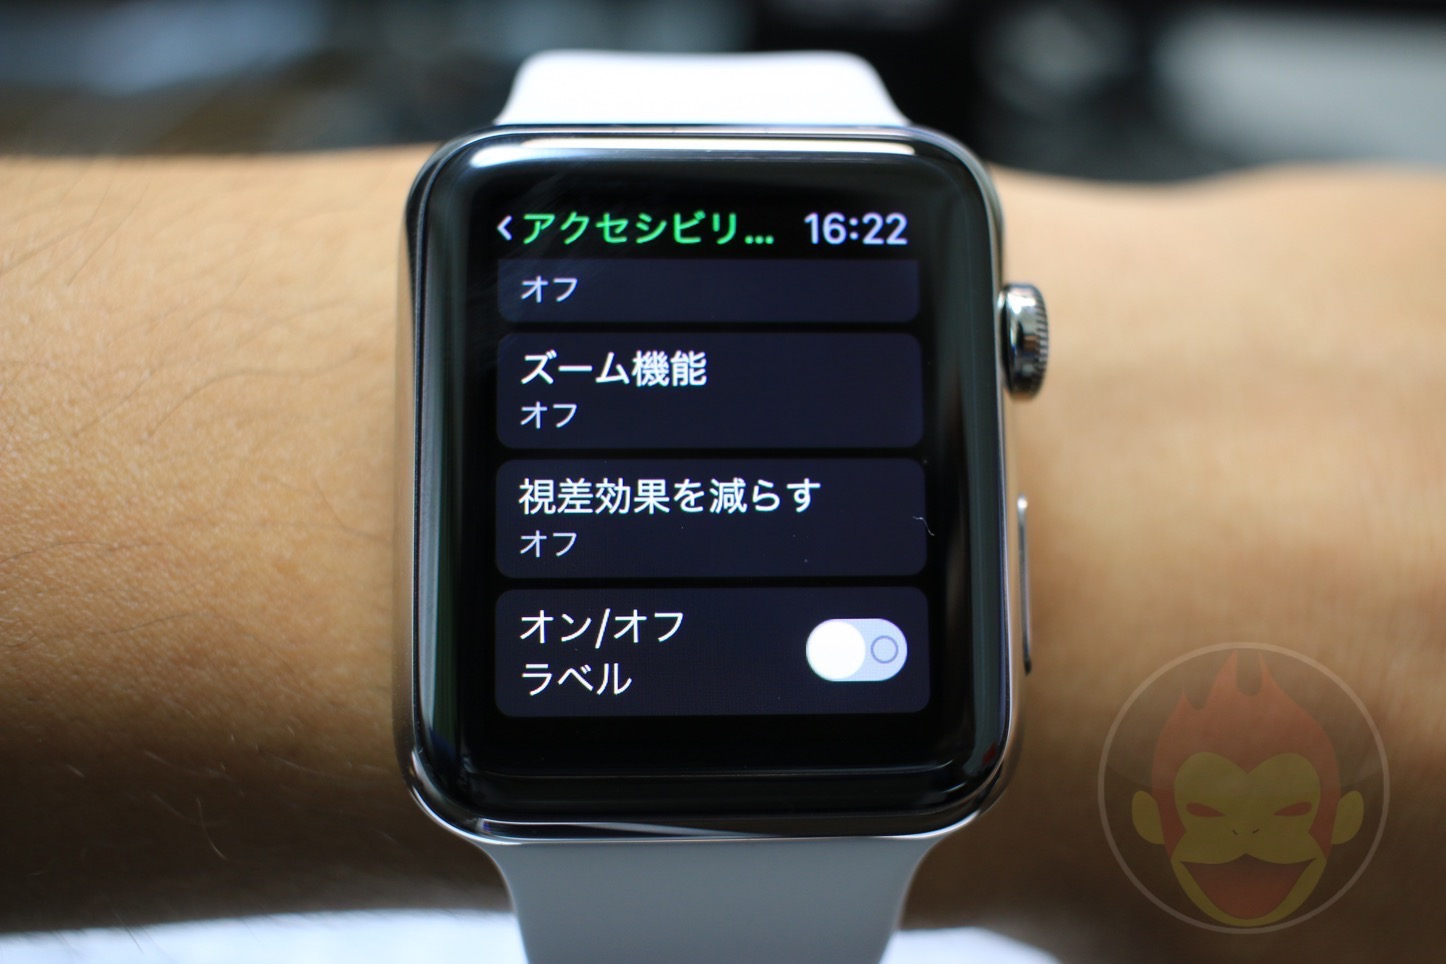 Apple-Watch-Getting-Most-Out-Of-Battery-0010.JPG